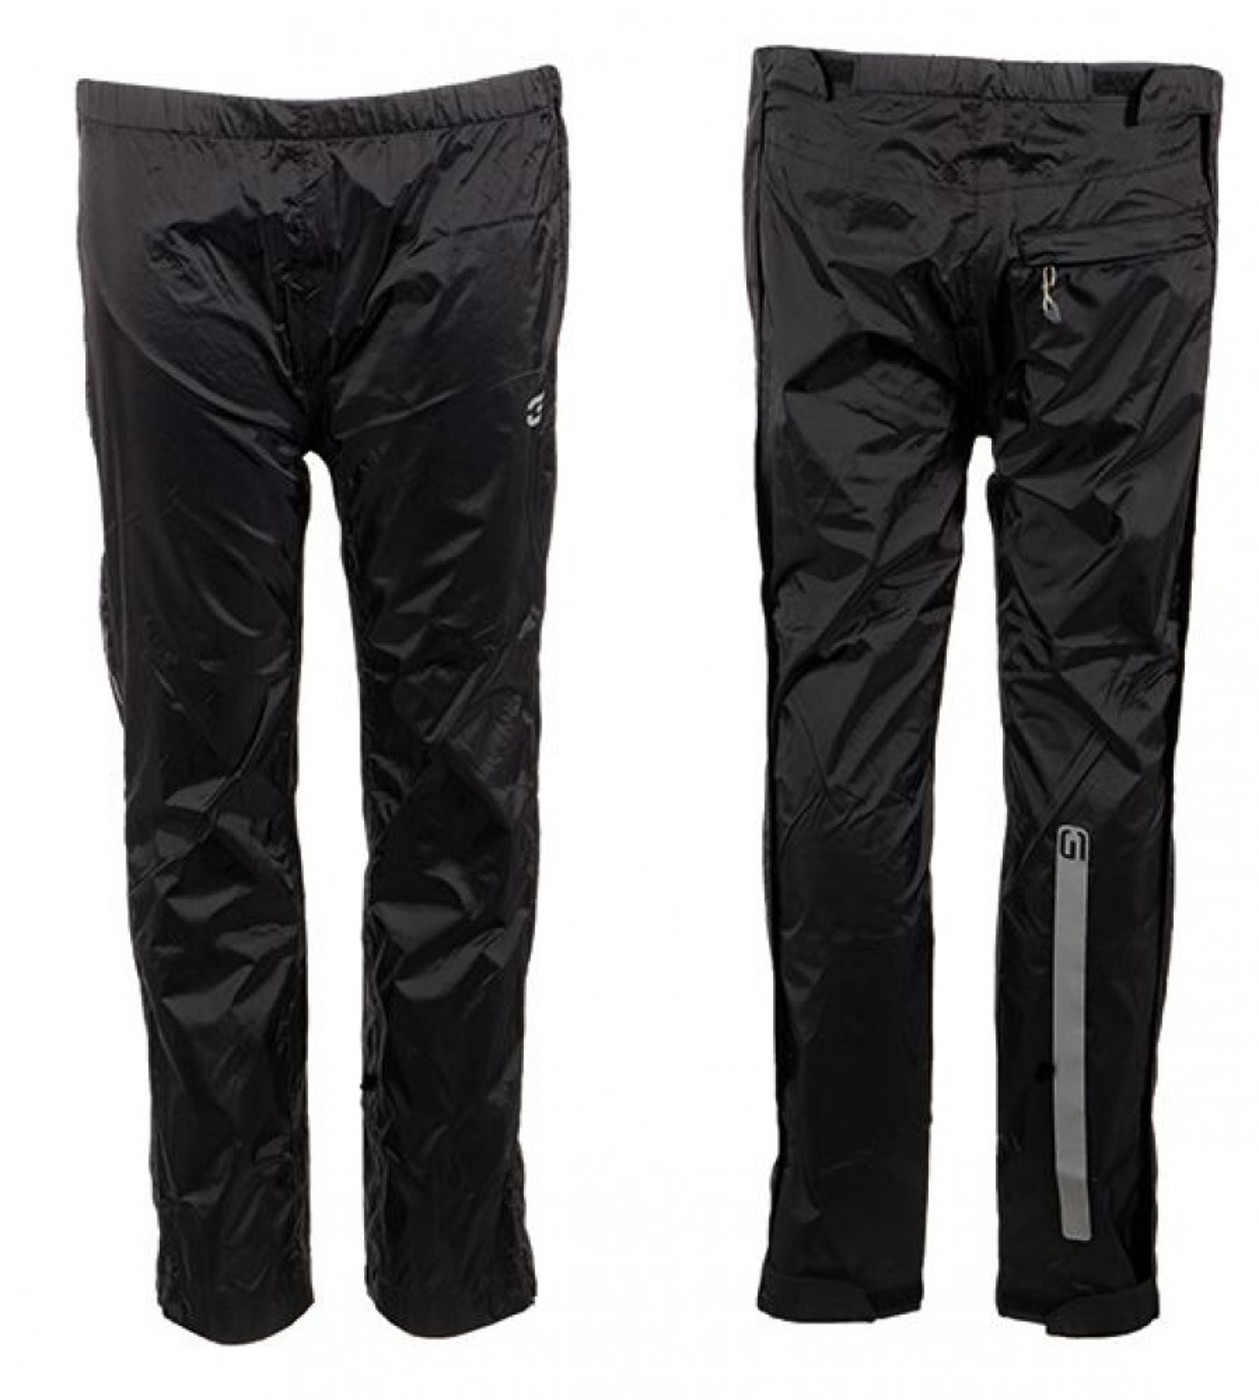 GTS RAIN PANT, PACKAWAY, Ladies - Damen